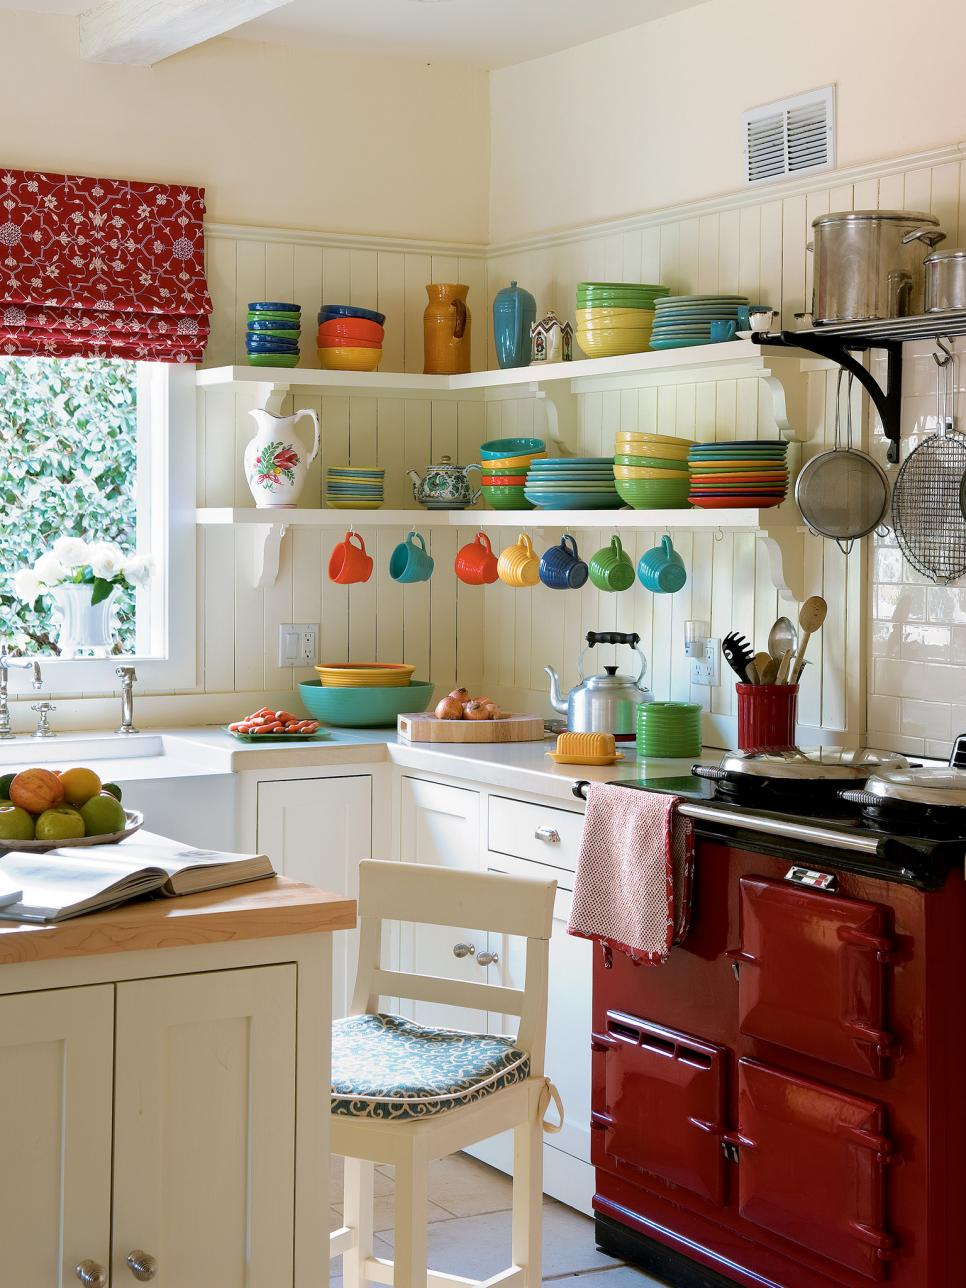 small kitchen designs pictures of small kitchen design ideas from hgtv | hgtv IYJBCSP